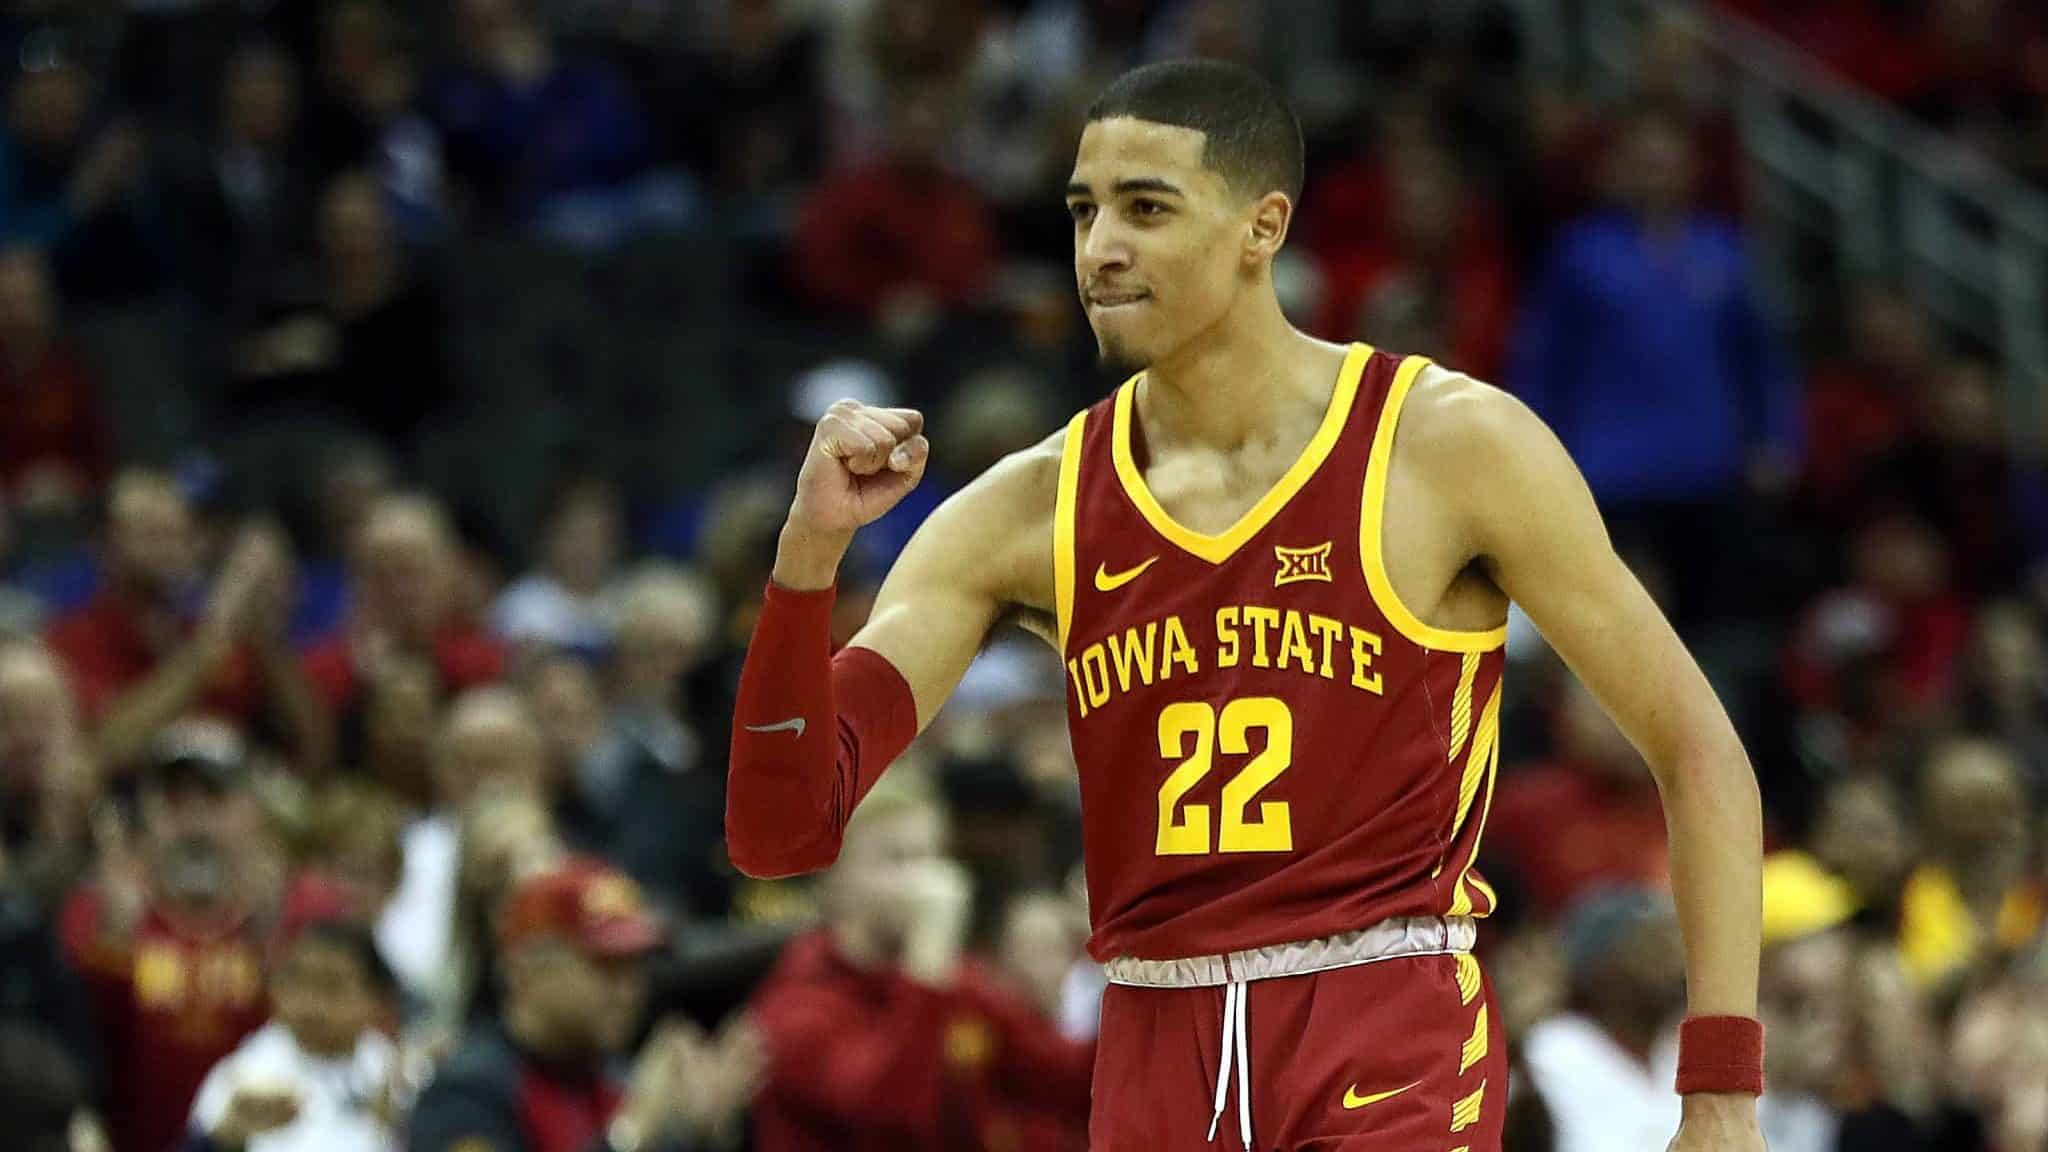 NBA Draft 2020: Tyrese Haliburton Believes He is a Good Fit for the Golden State Warriors